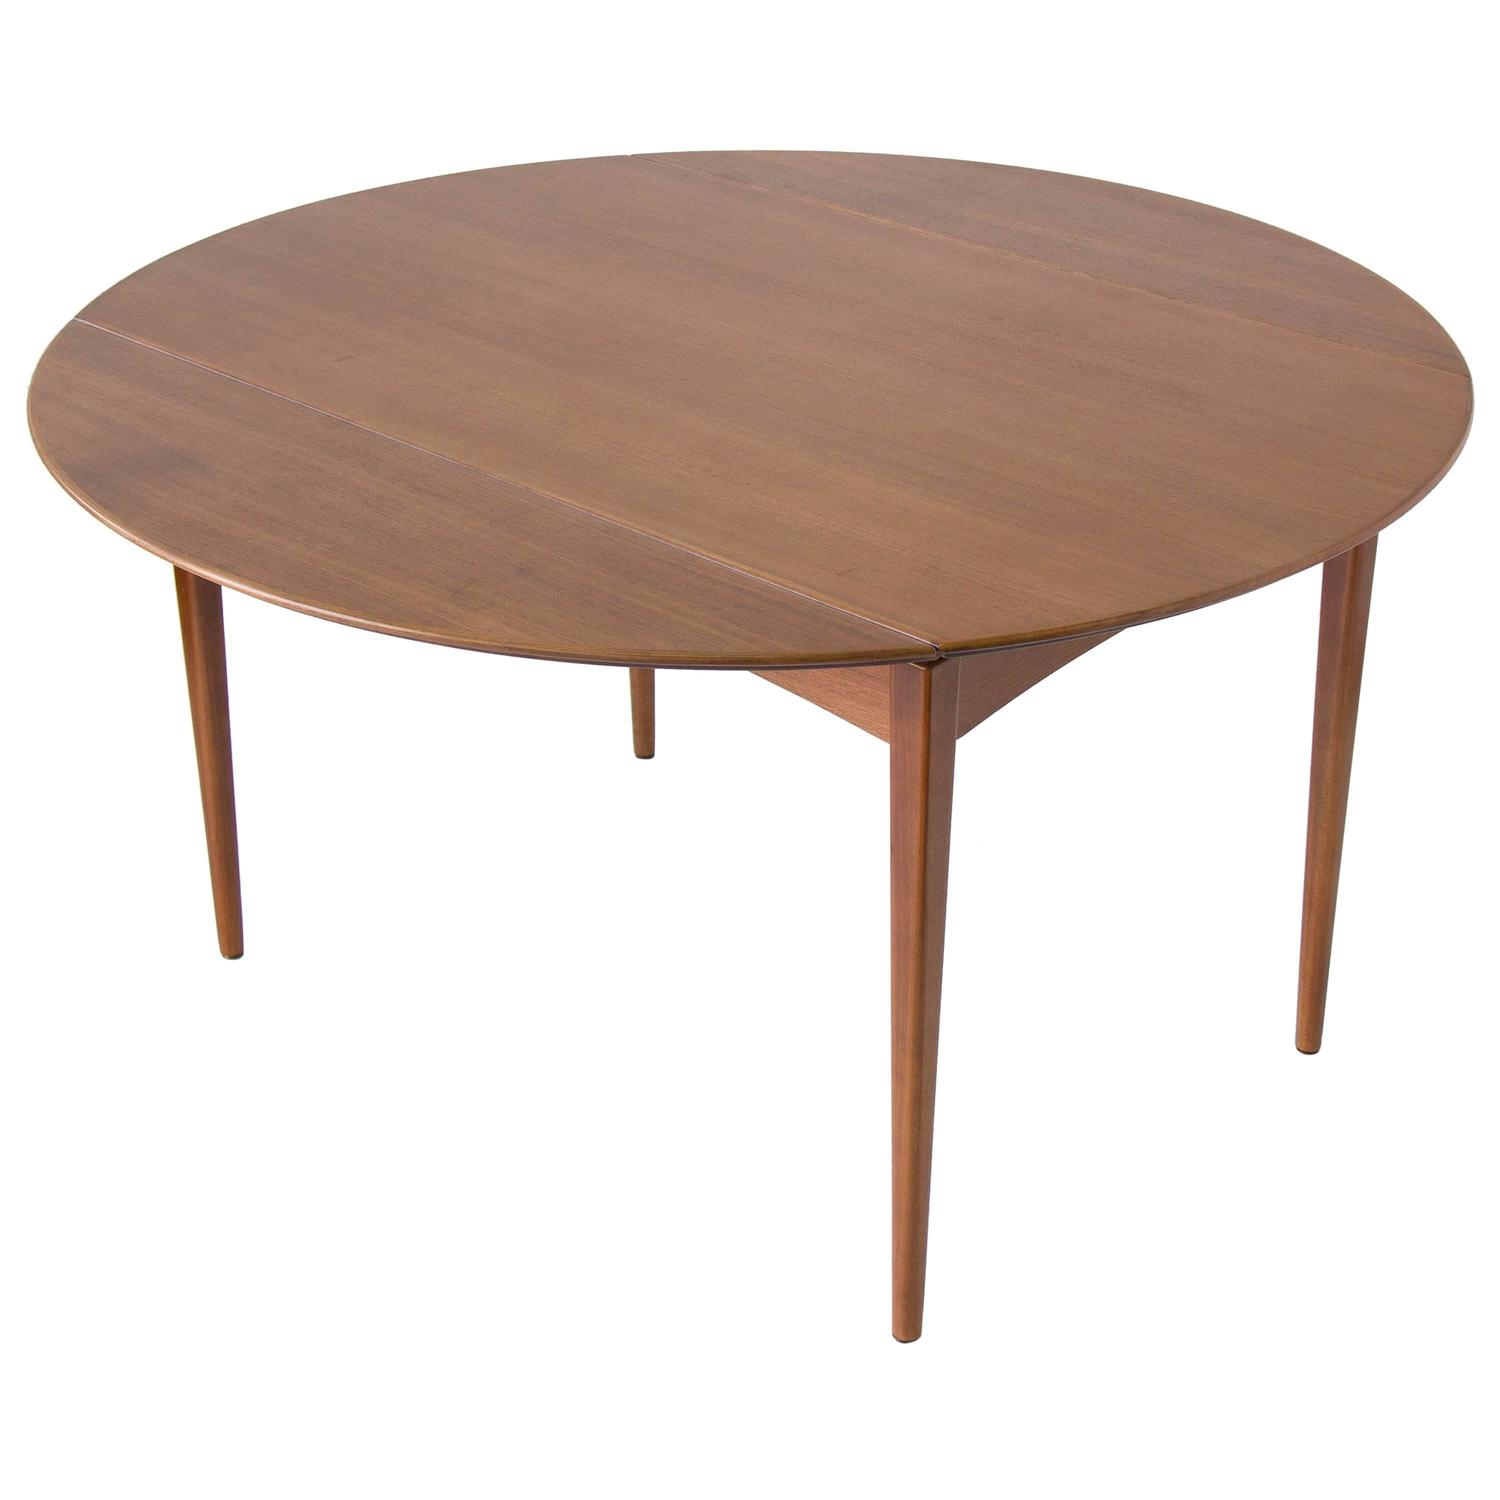 Drop leaf dux dining table at 1stdibs for Drop leaf dining table